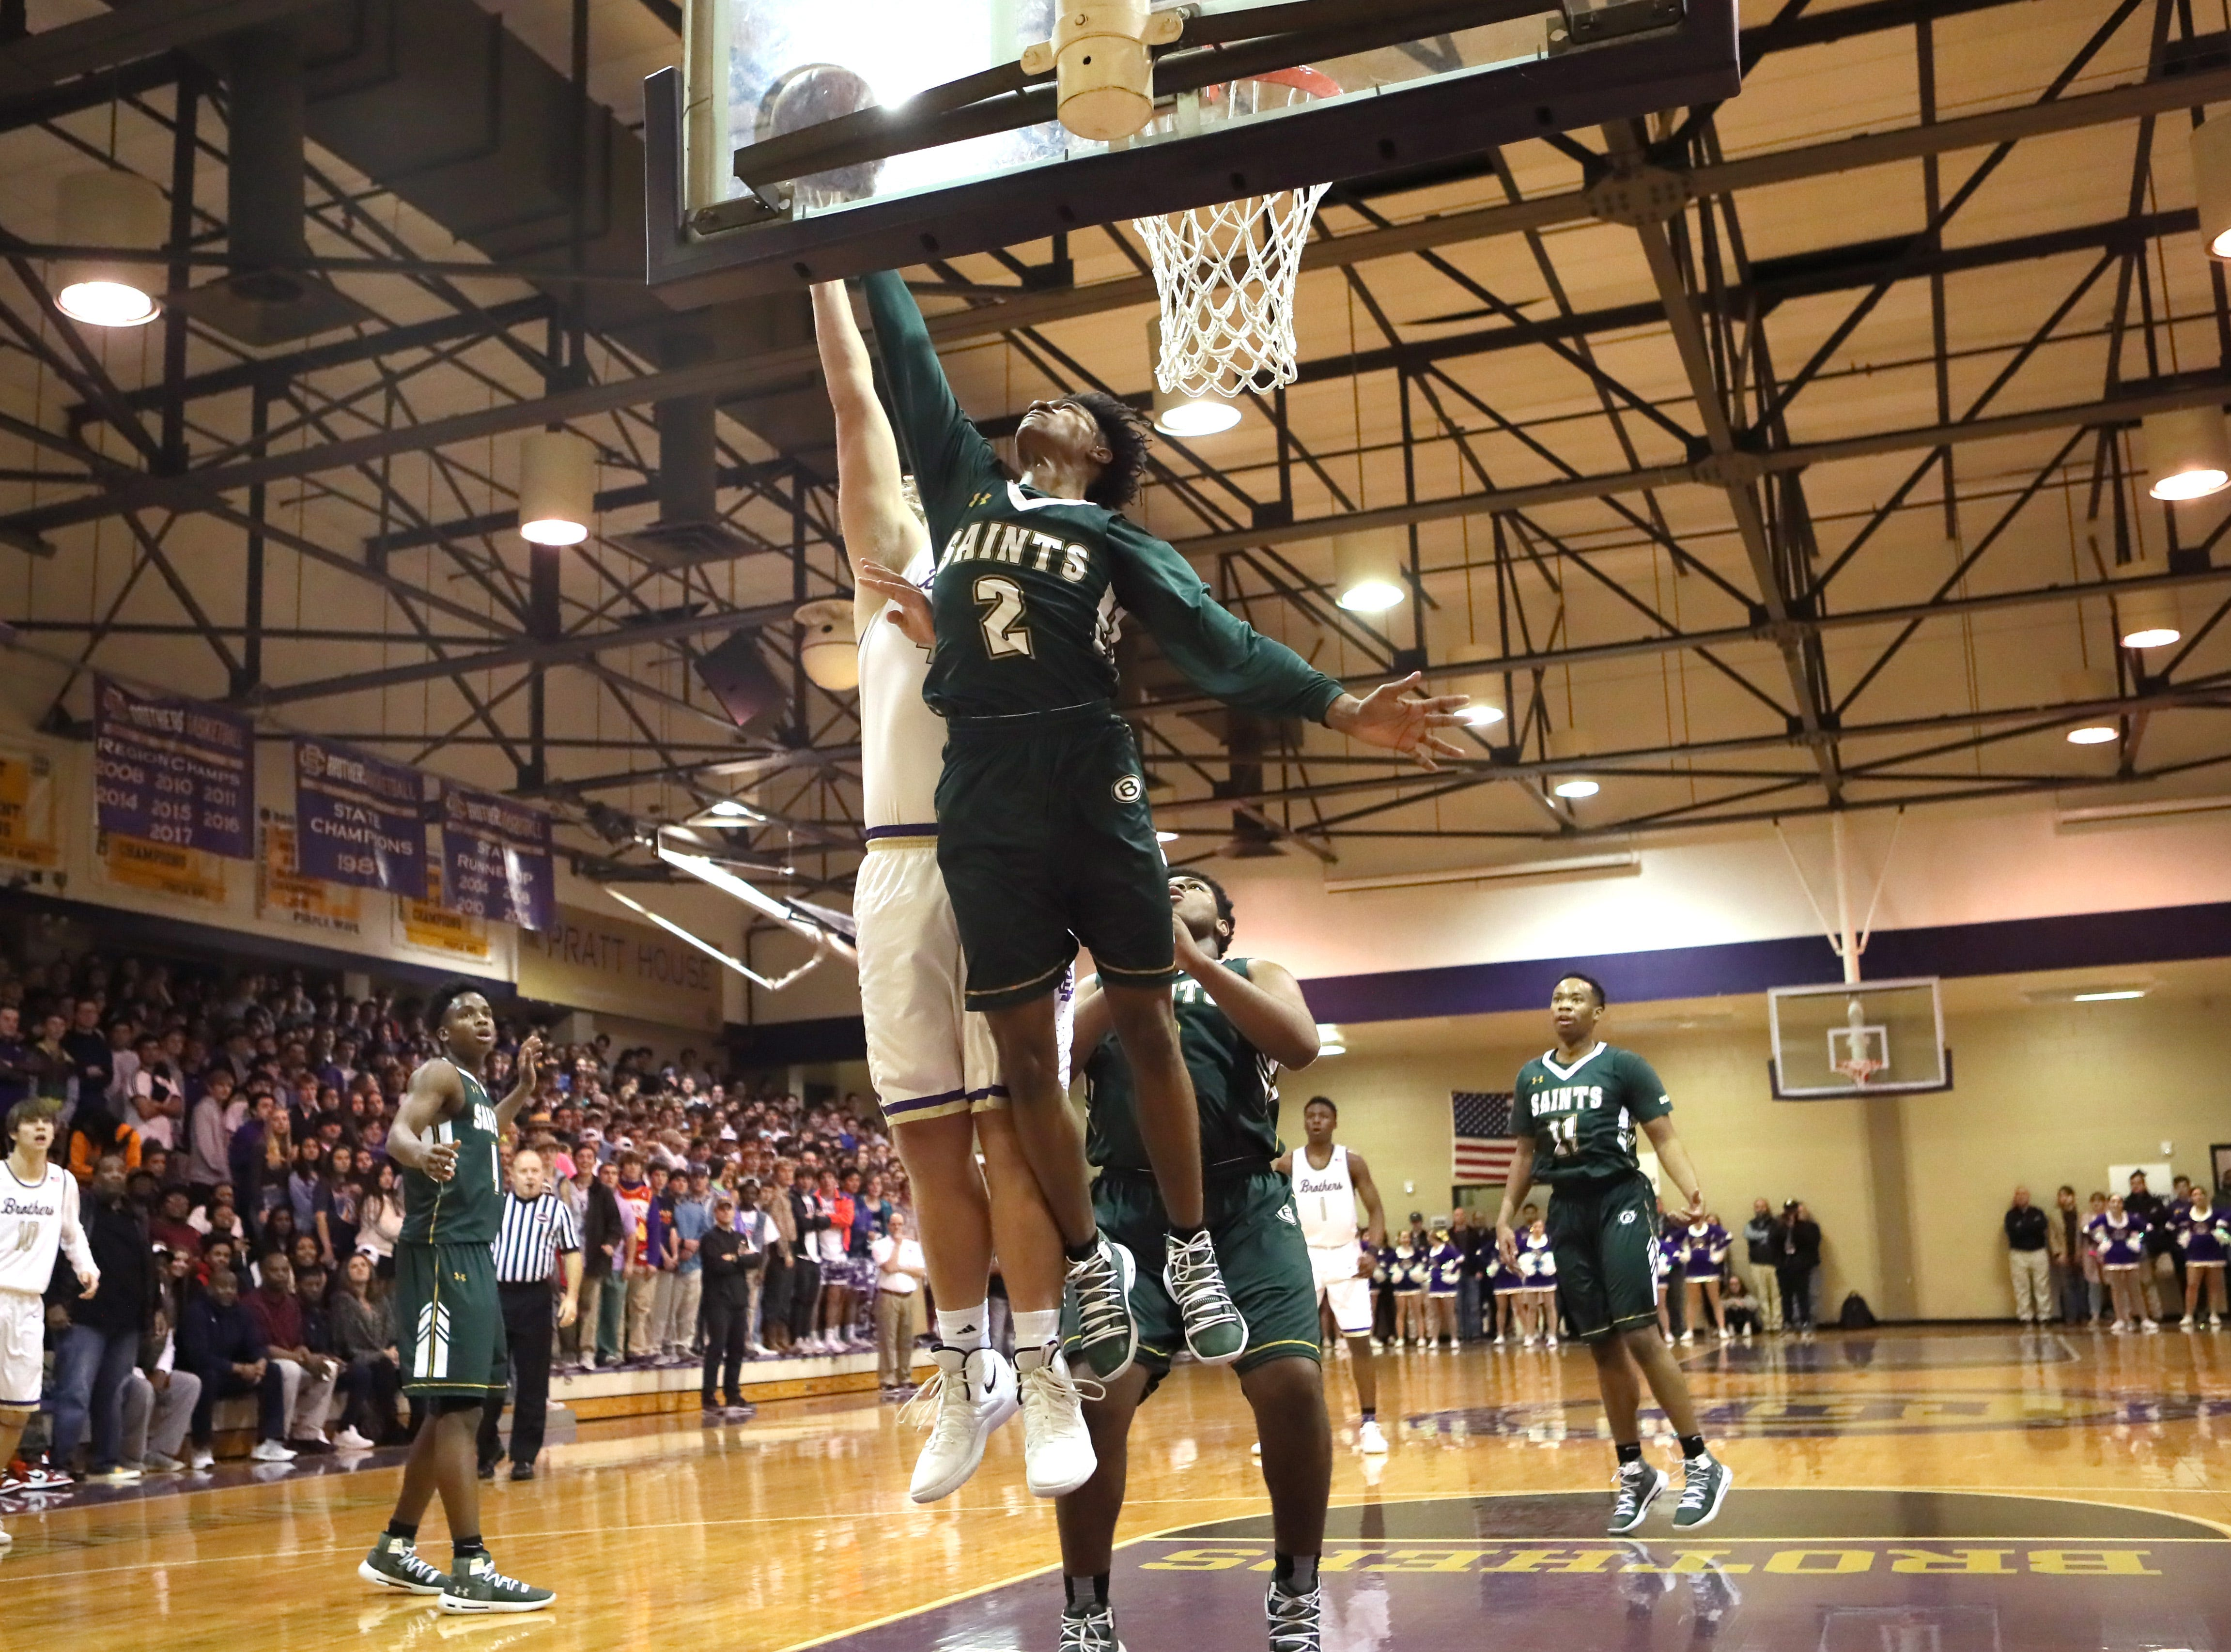 Briarcrest's Scooter Malone blocks a shot by Christian Brothers' Bill Norton during their game at Christian Brothers High School on Friday, Jan. 11, 2019.